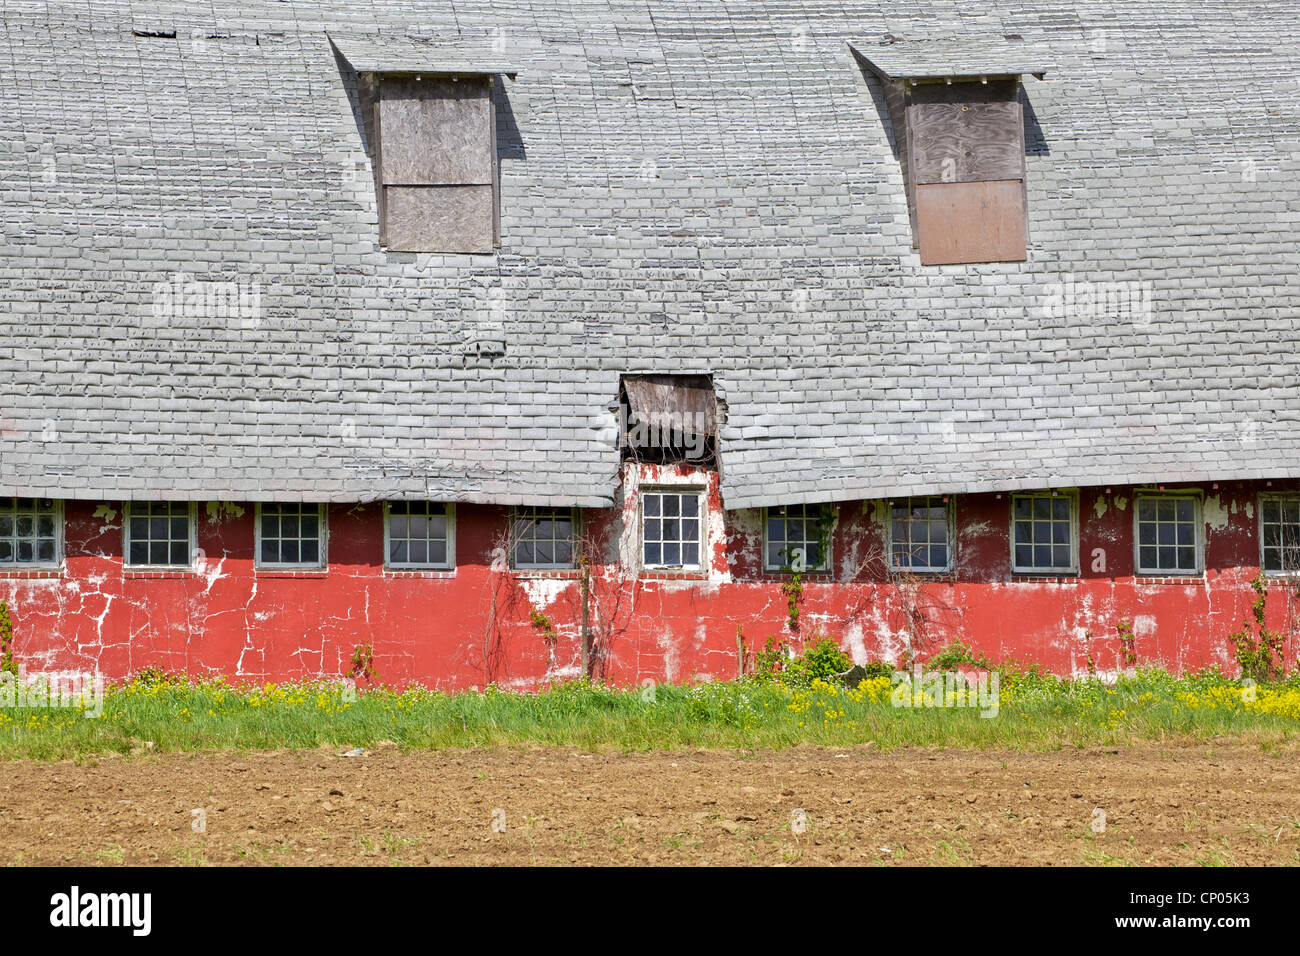 Rustic Red Farm Barn - Stock Image